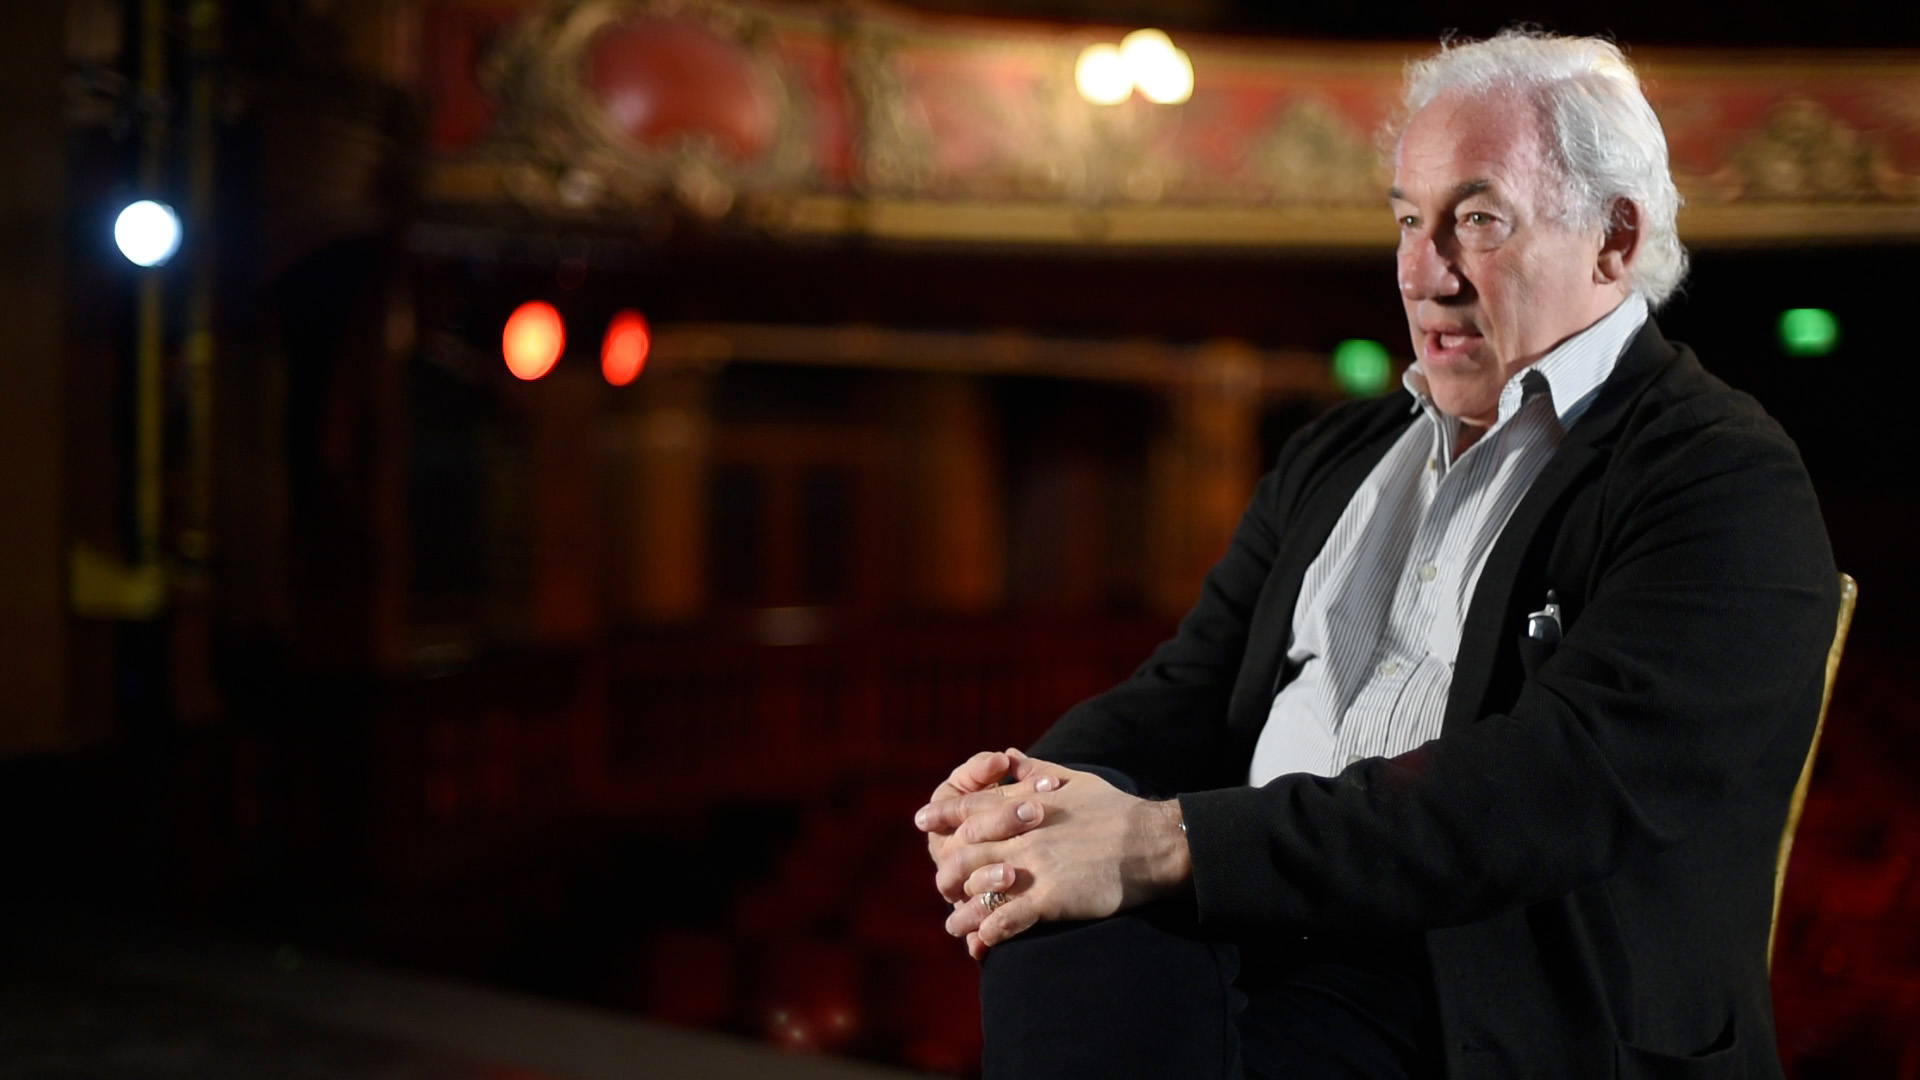 Actor Simon Callow distilled the magic of one of theatre architect Frank Matcham's Victorian masterpieces.